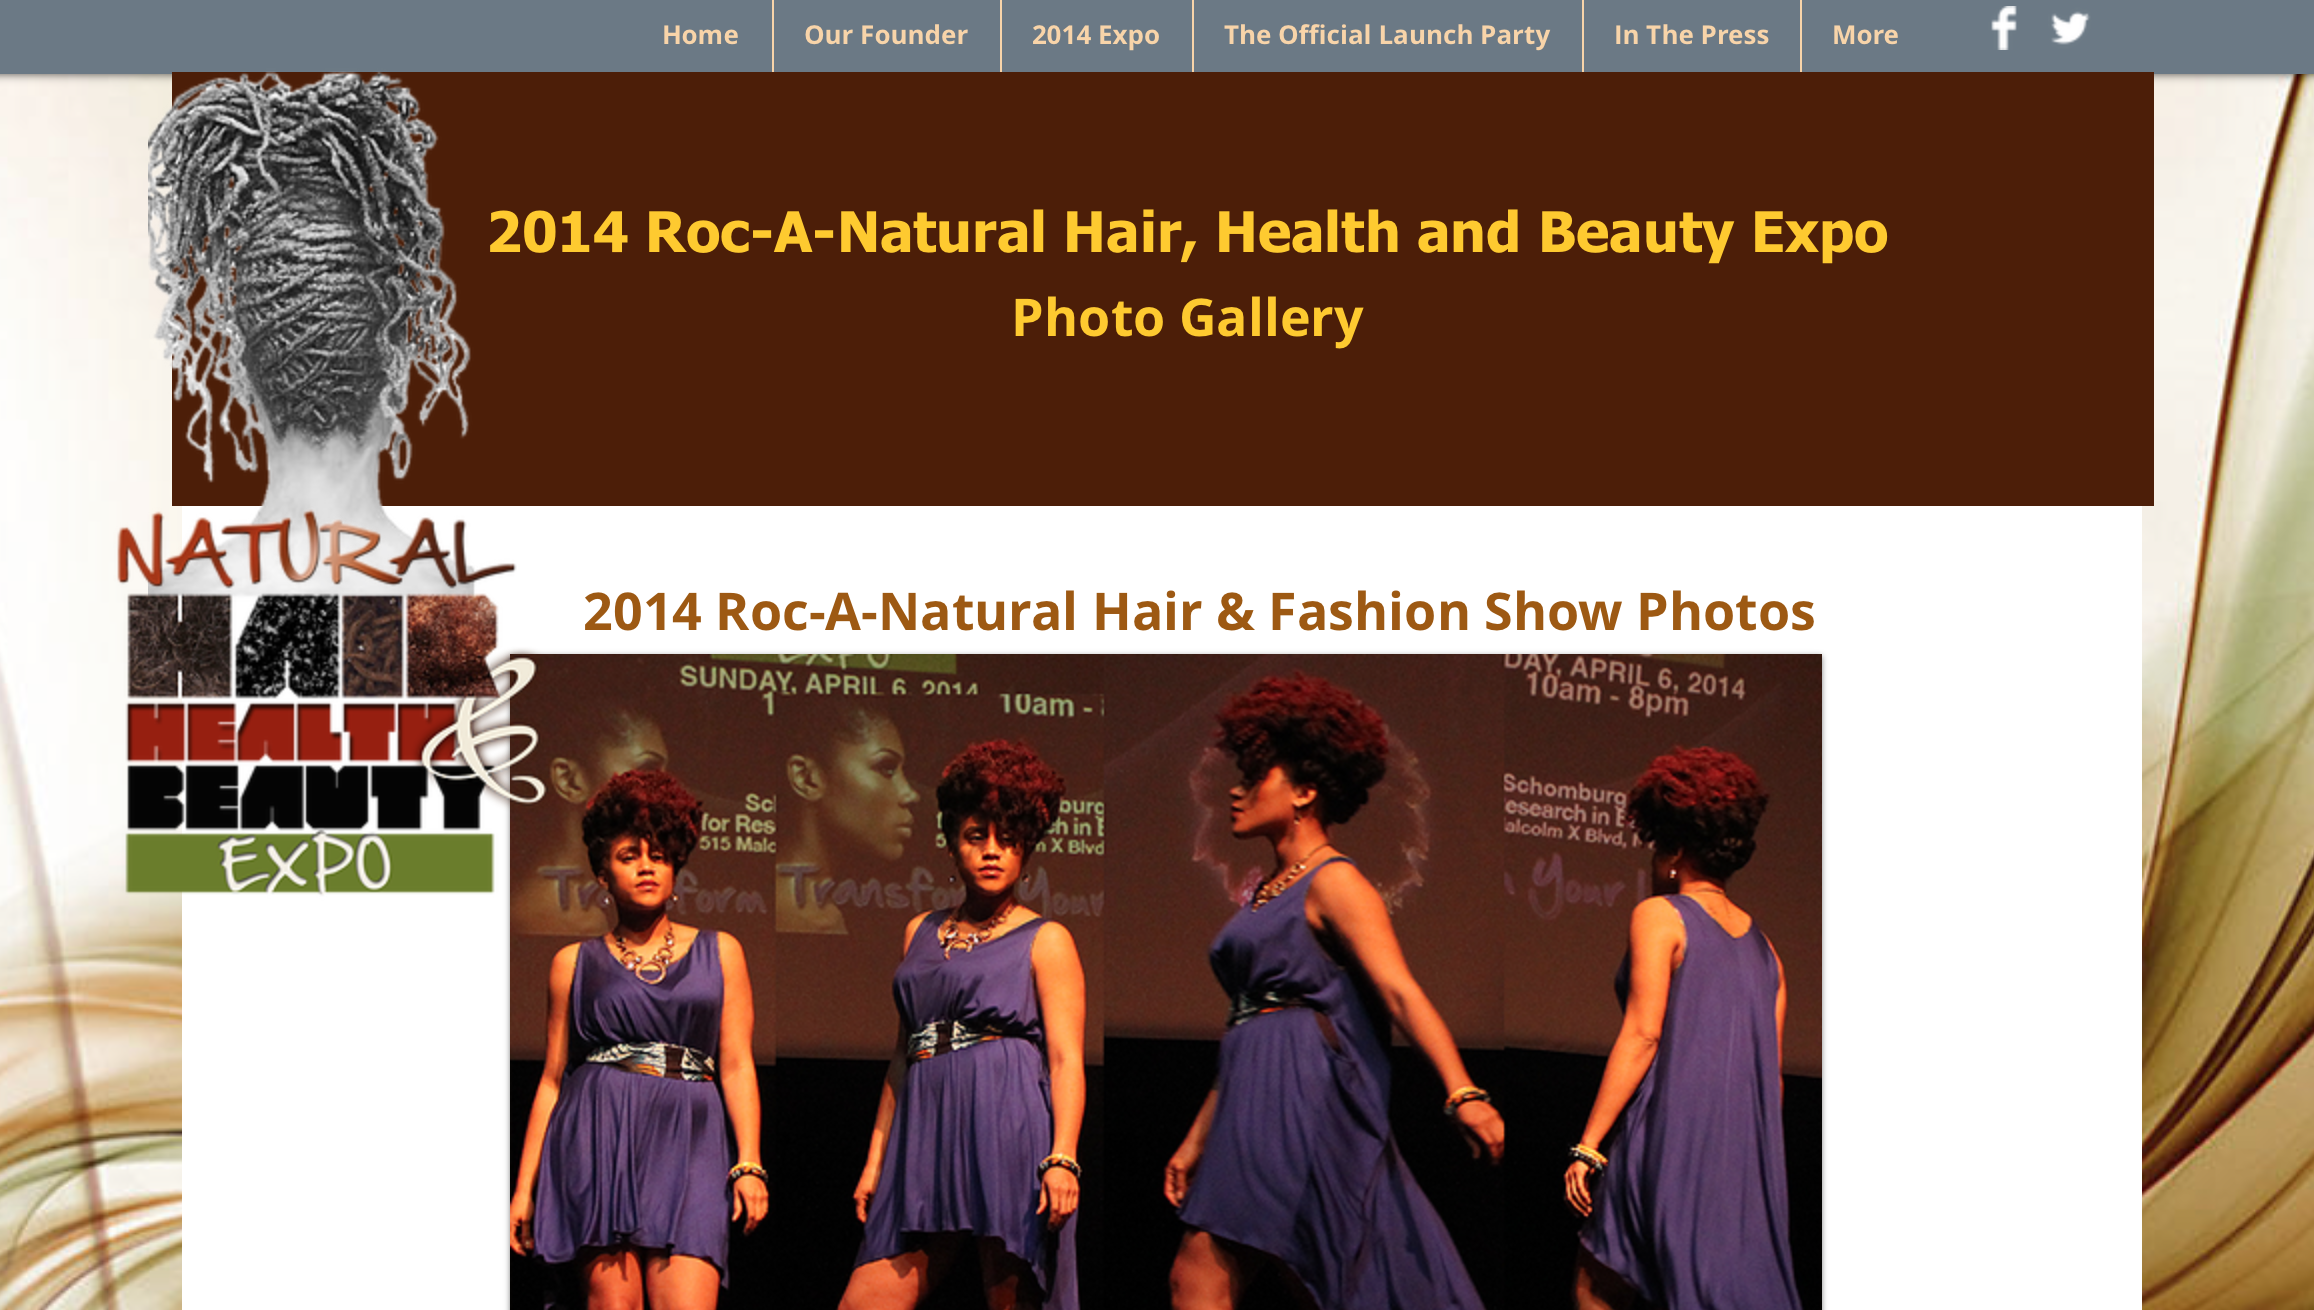 Roc a Natural Hair, Health and Beauty Expo    http://www.rocanatural.com